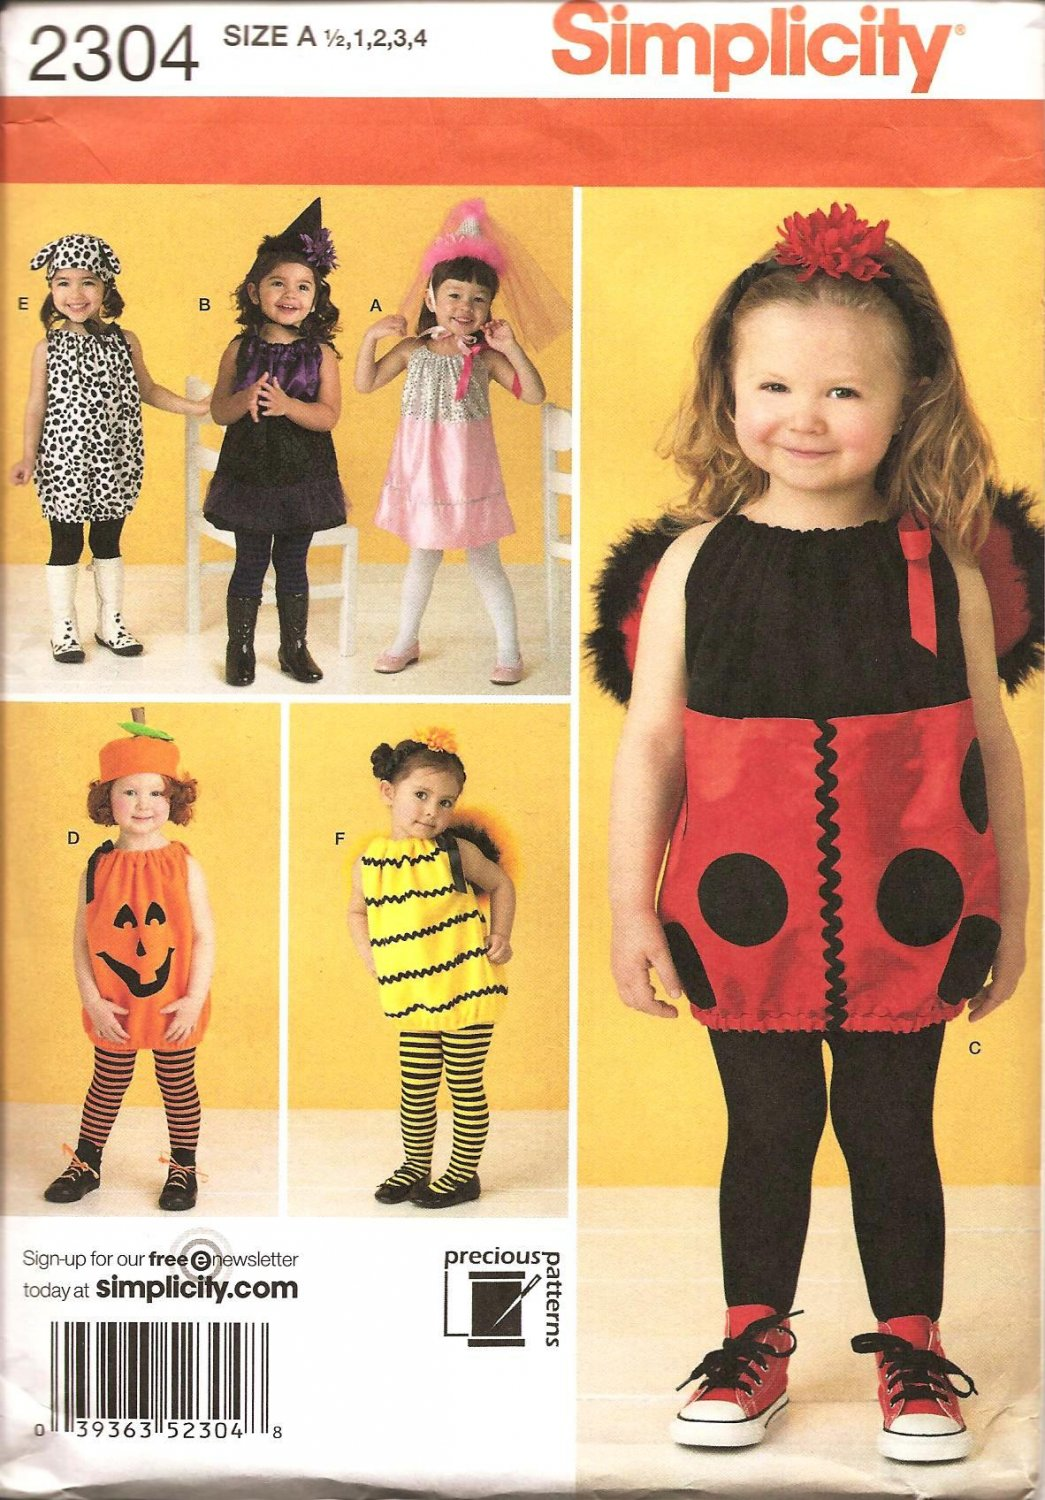 Simplicity 2304 Sewing Pattern for Toddler Costume - Lady Bug, Bee, Pumpkin, Dog, Witch & Princess